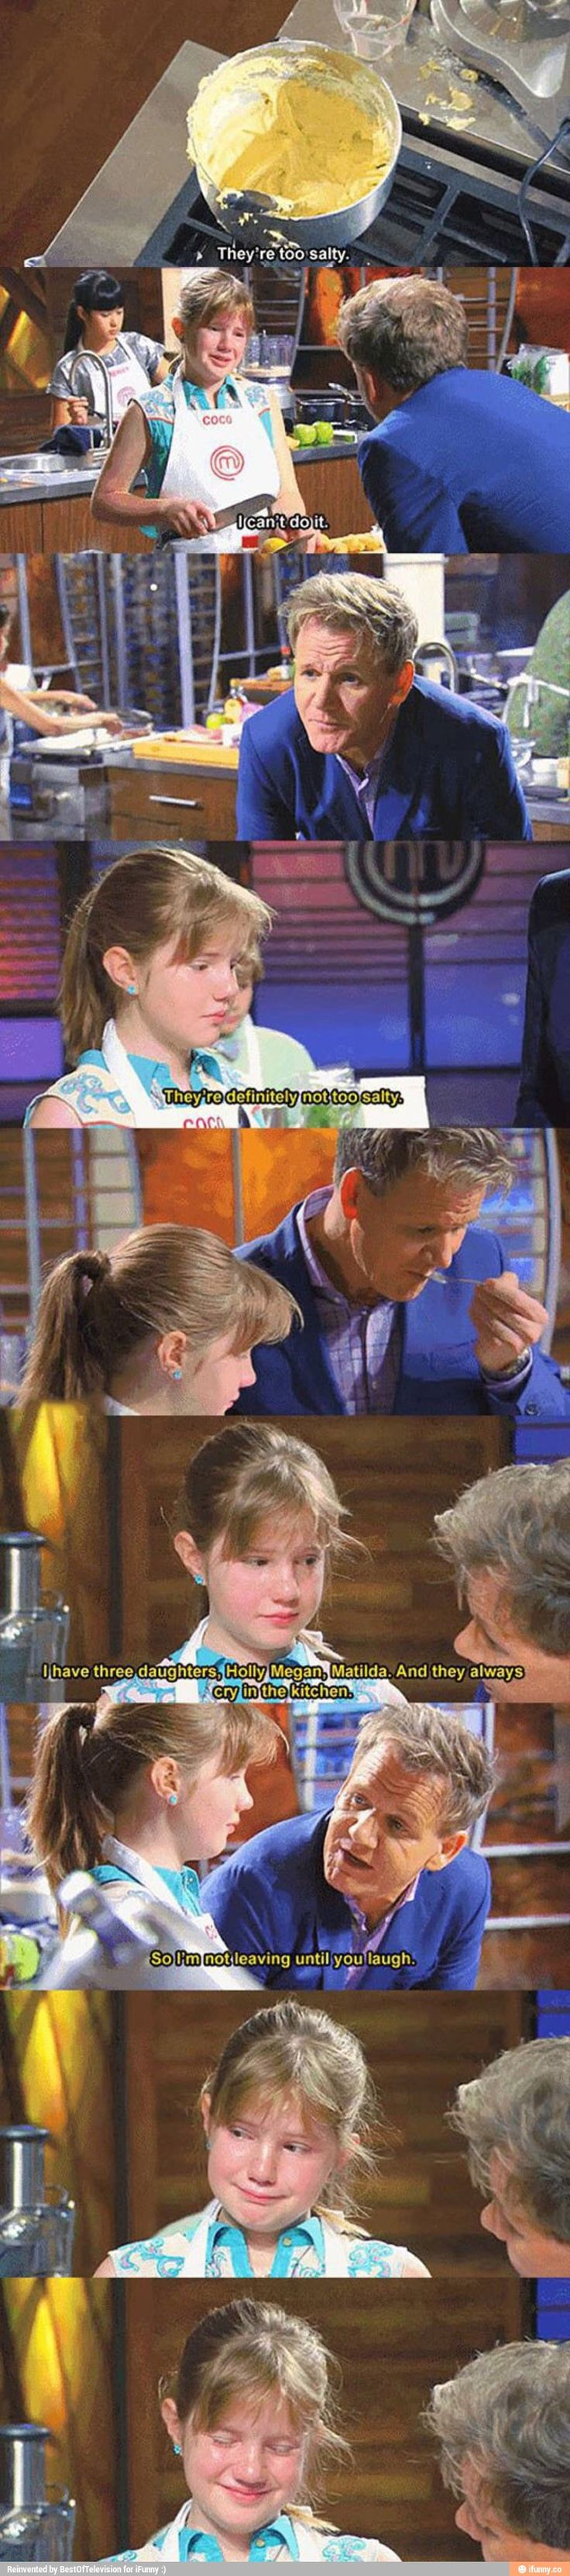 This is so cute. And Gordon Ramsey is so mean to adults but HE IS SO FREAKING NICE TO KIDS